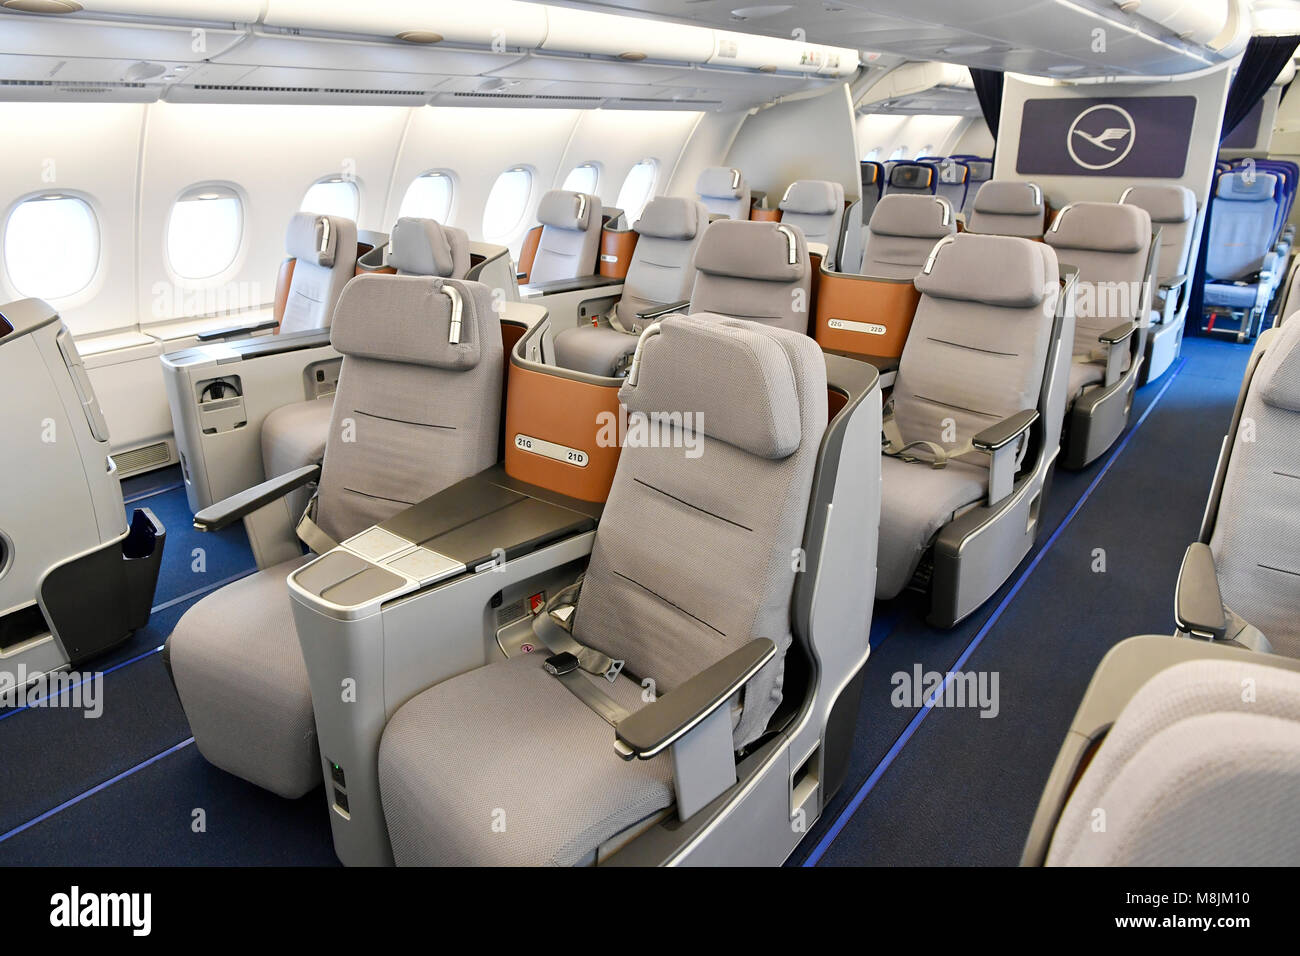 airbus a380 800 cabin stockfotos airbus a380 800 cabin bilder alamy. Black Bedroom Furniture Sets. Home Design Ideas